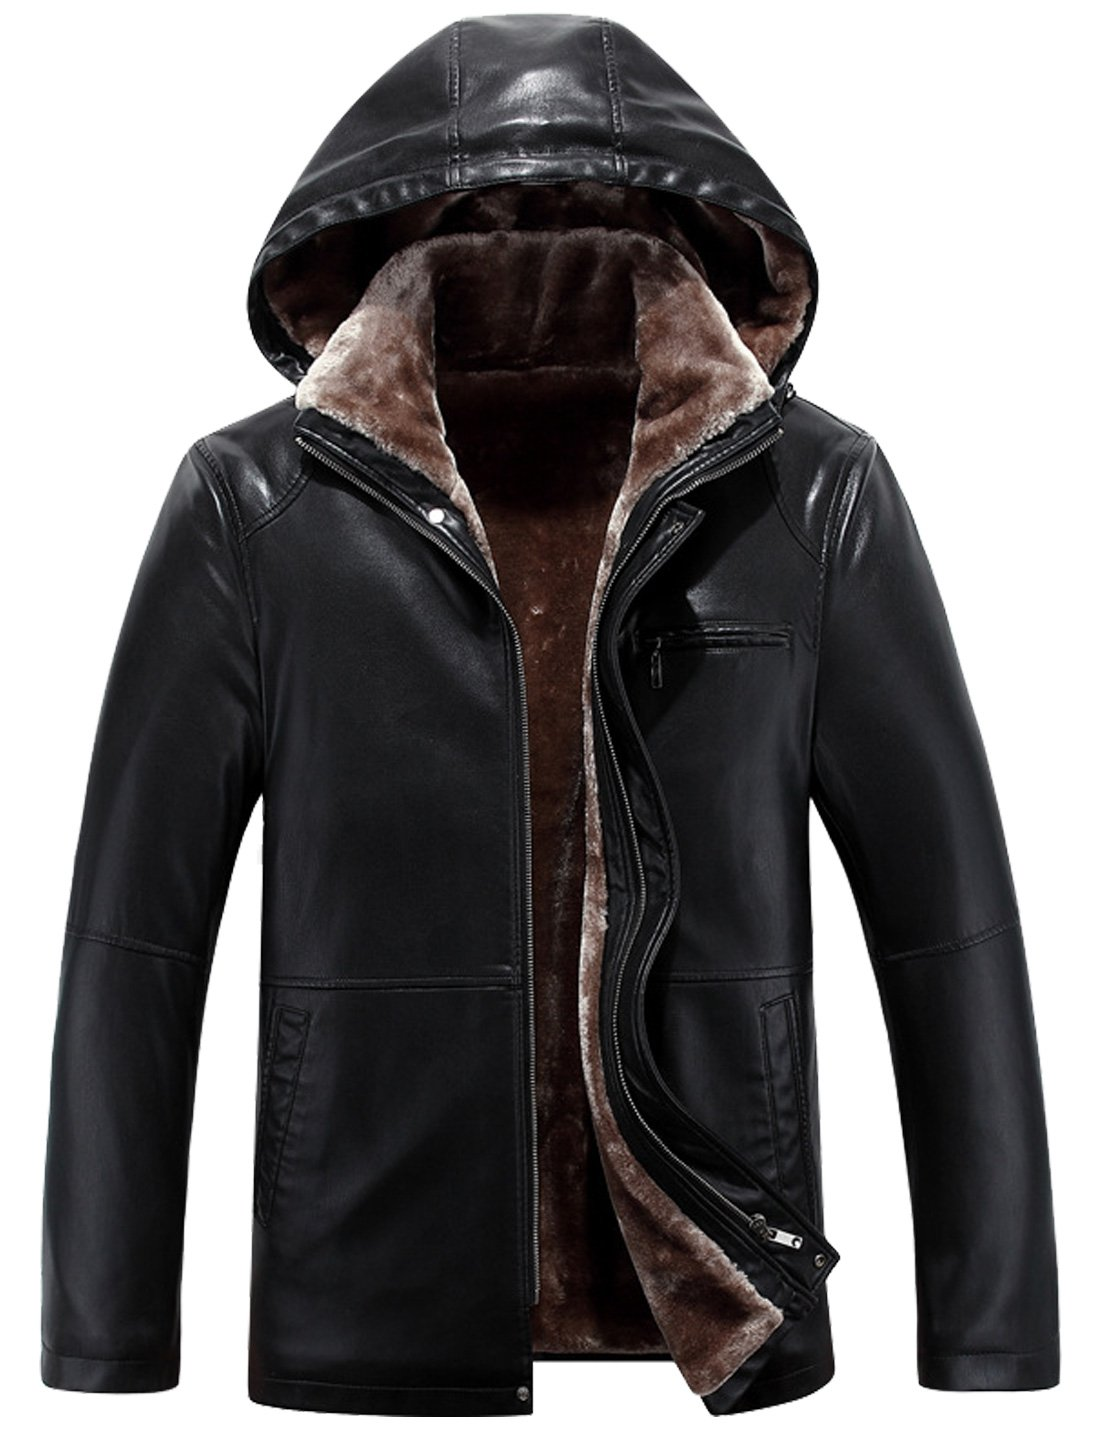 Tanming Men's Winter Warm Leather Coat Real Fur Hooded Leather Jacket (X-Large, 0-112Black) by Tanming